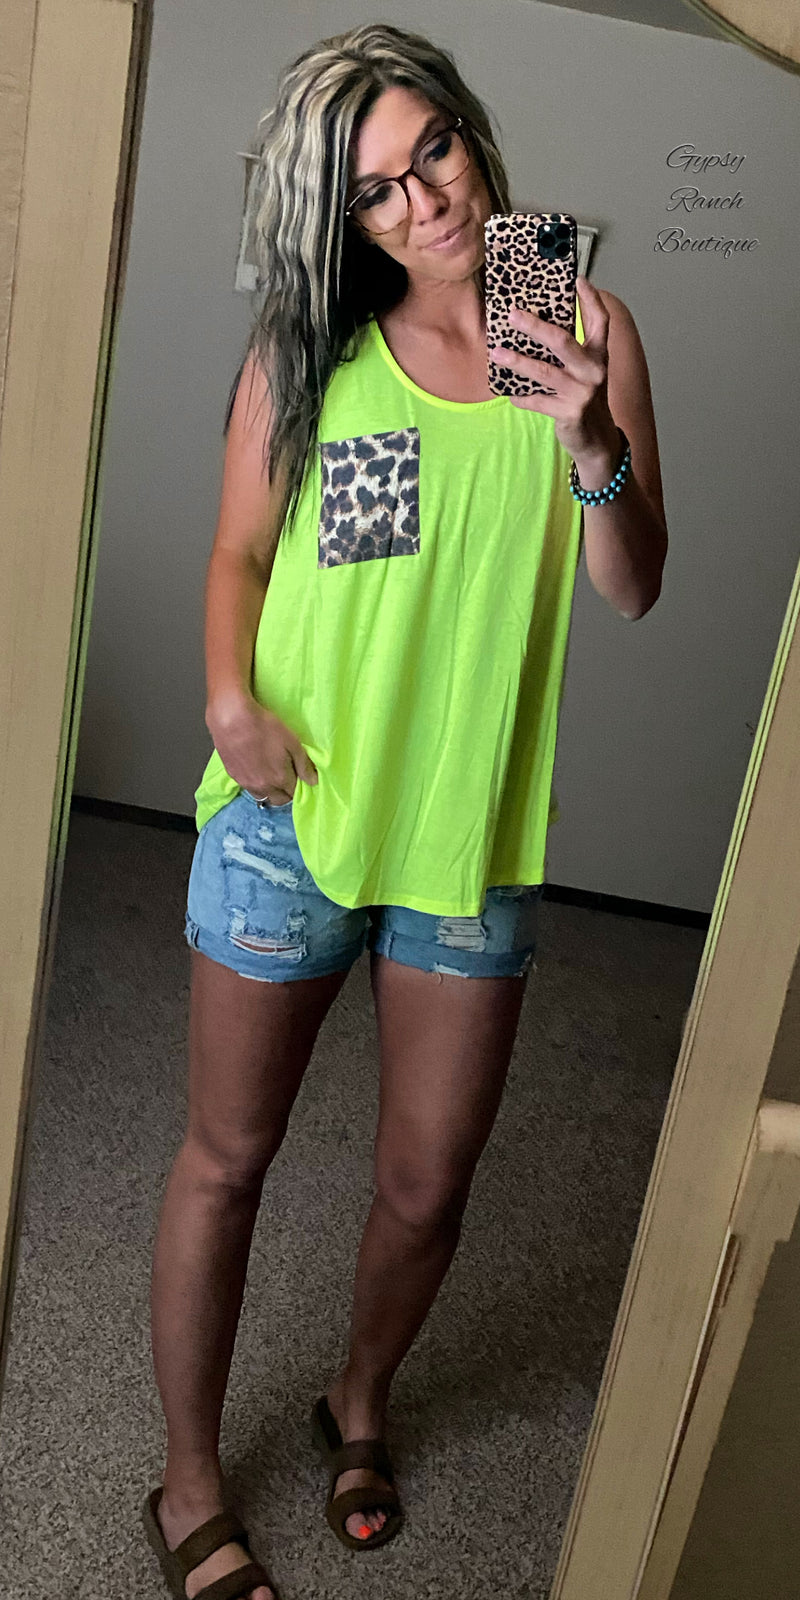 Cicily Neon Green Leopard Pocket Tank Top - Also in Plus Size